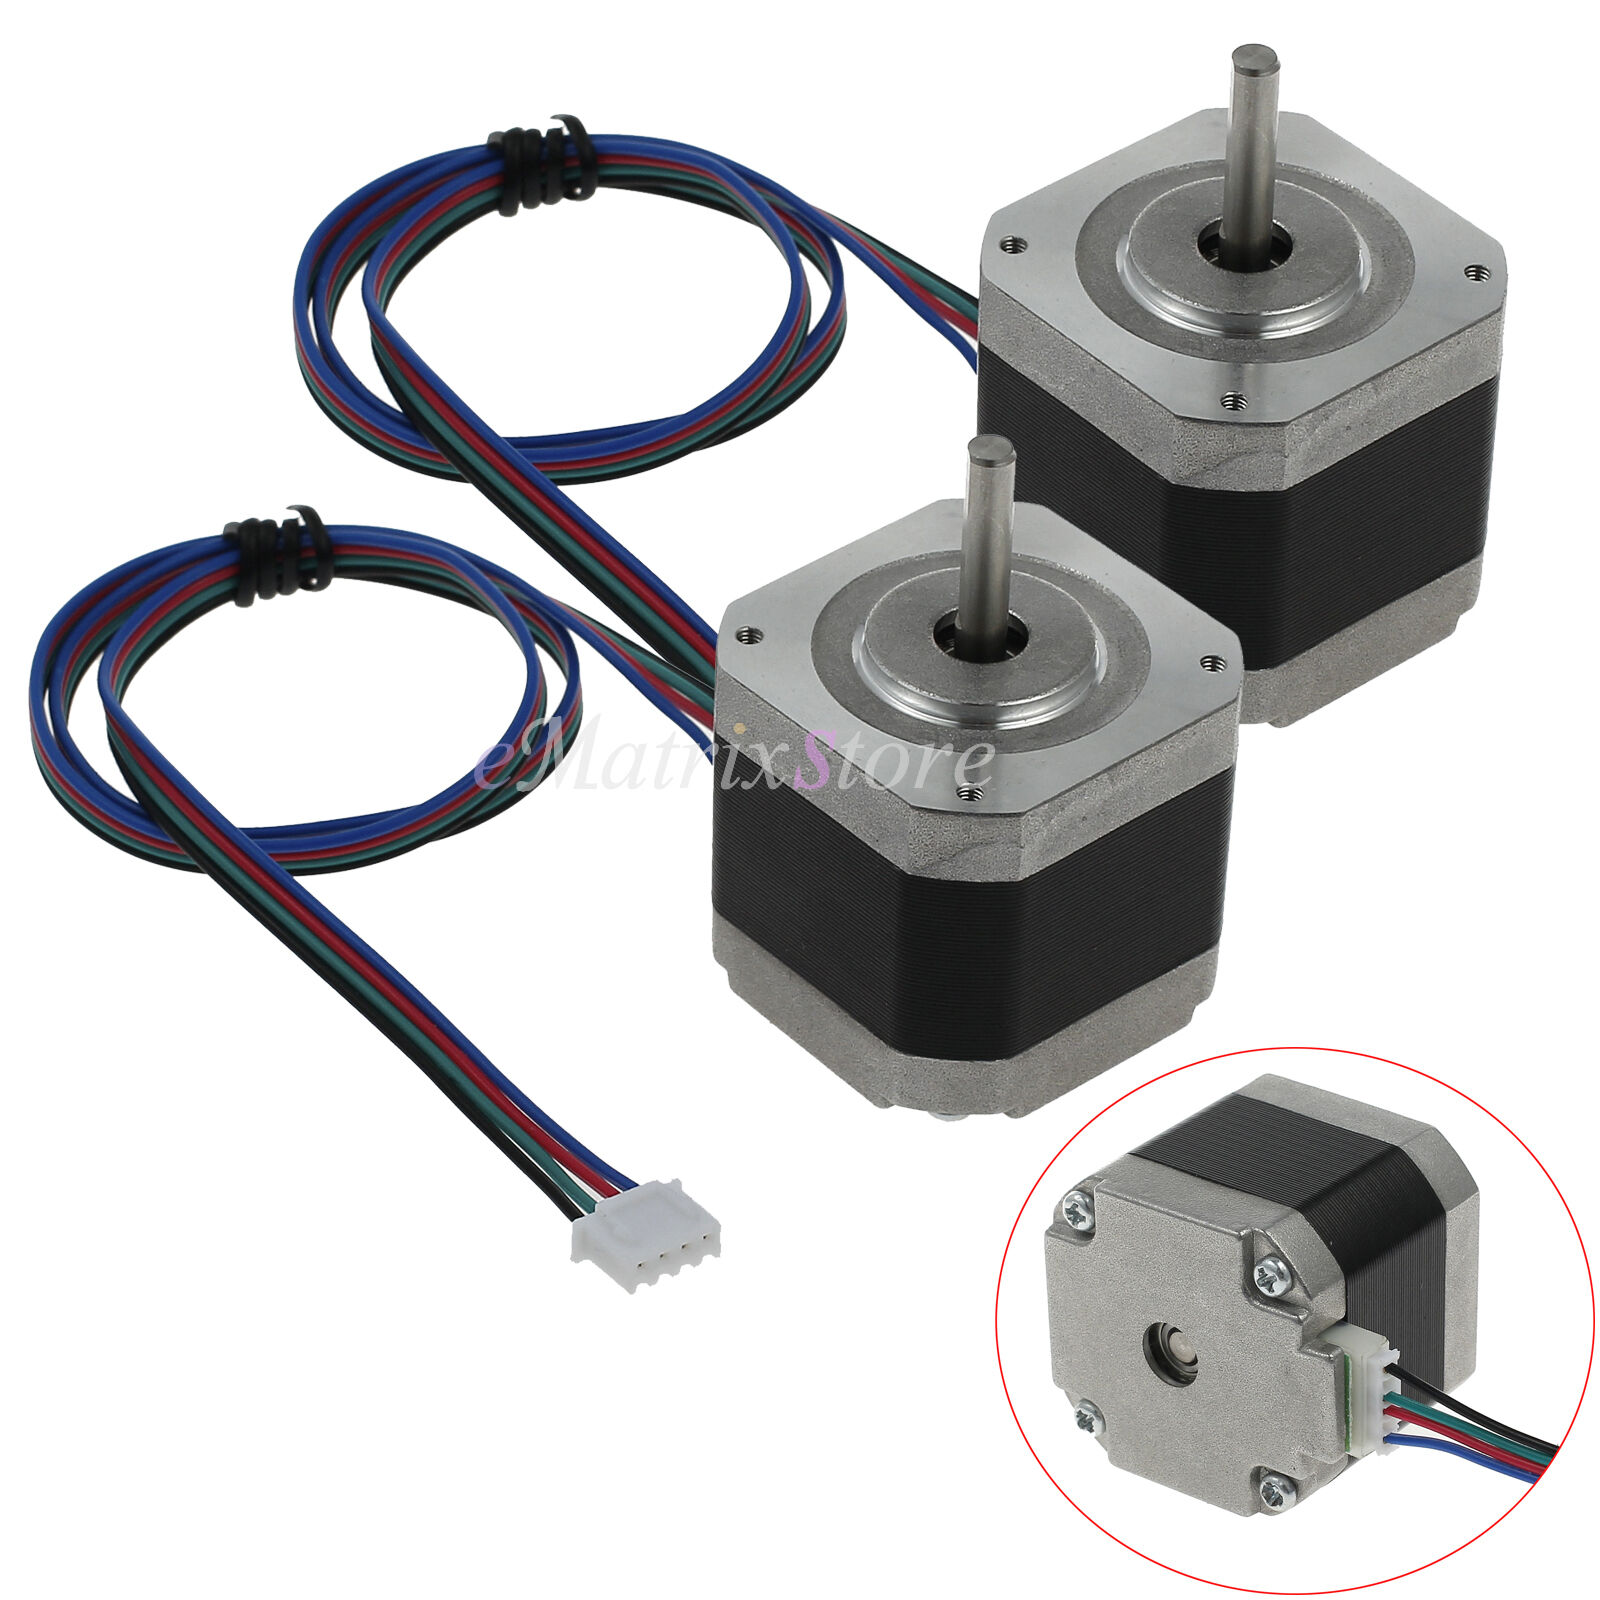 2pcs Nema 17stepper Motor 56ncm 42byghw60 1 8 12v For Diy